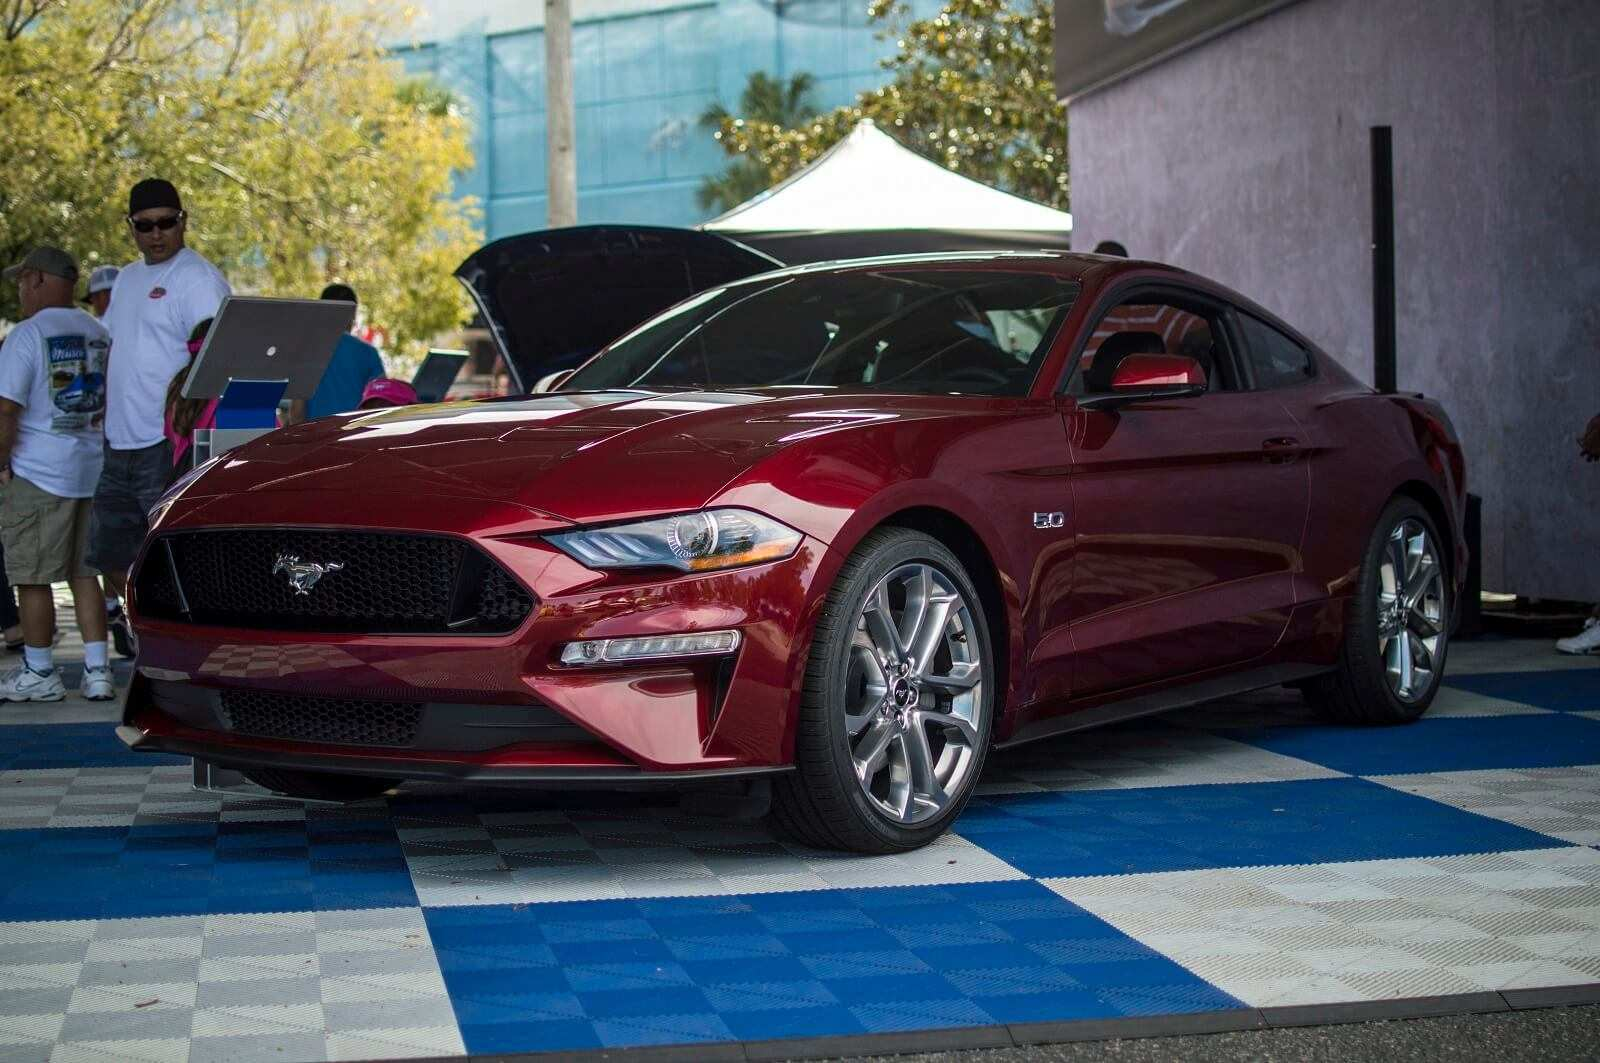 66 New 2019 Ford Mustang Colors New Concept with 2019 Ford Mustang Colors